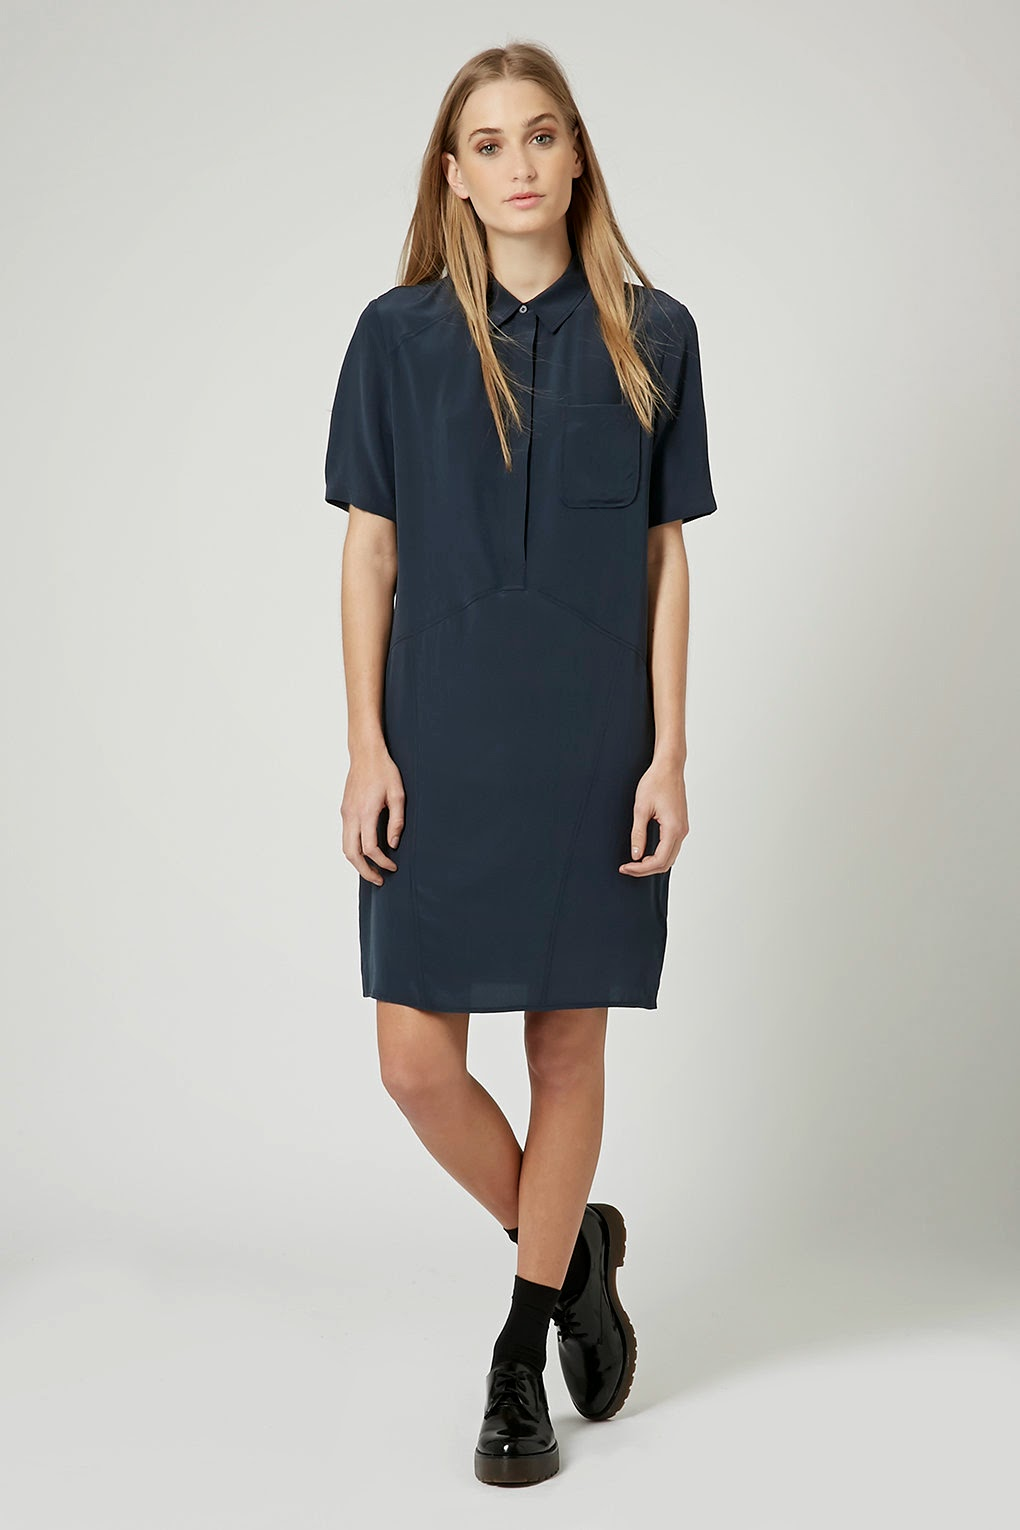 navy silk dress 2015, boutique silk dress,